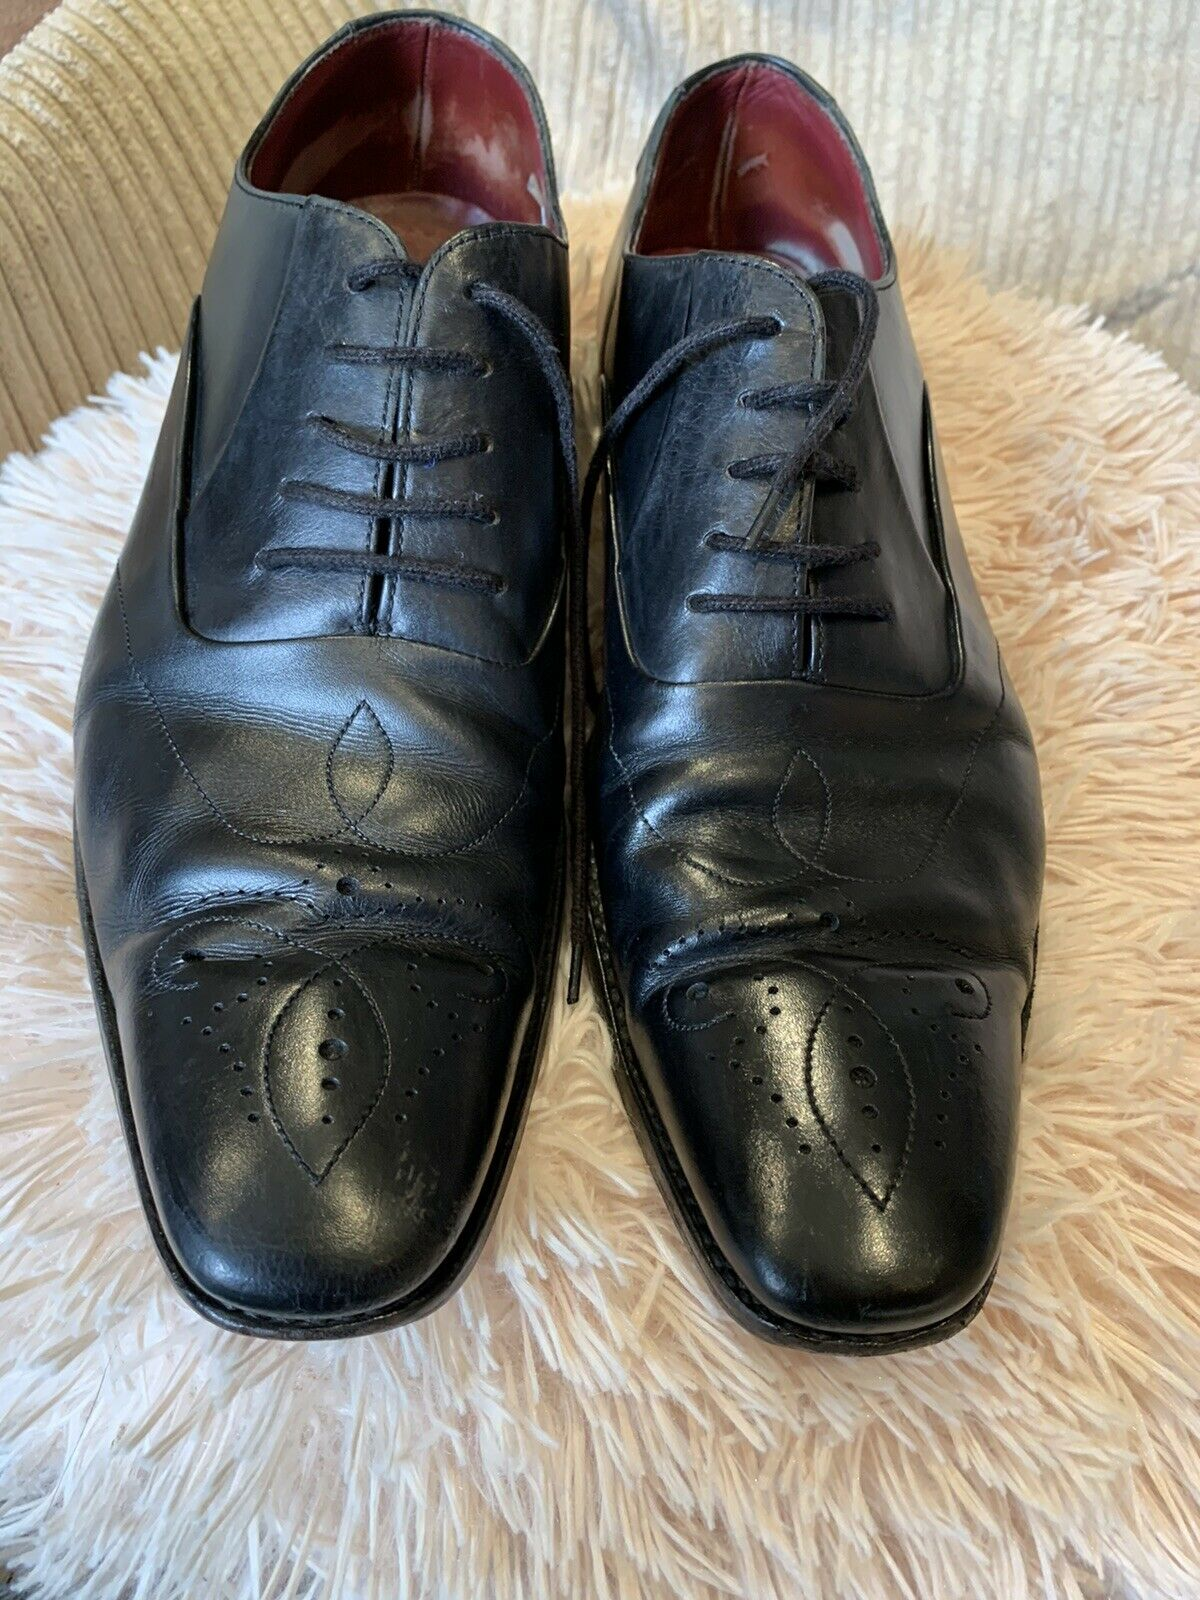 LOAKE Brogues Size 8.5 Black Leather Very Good Condition